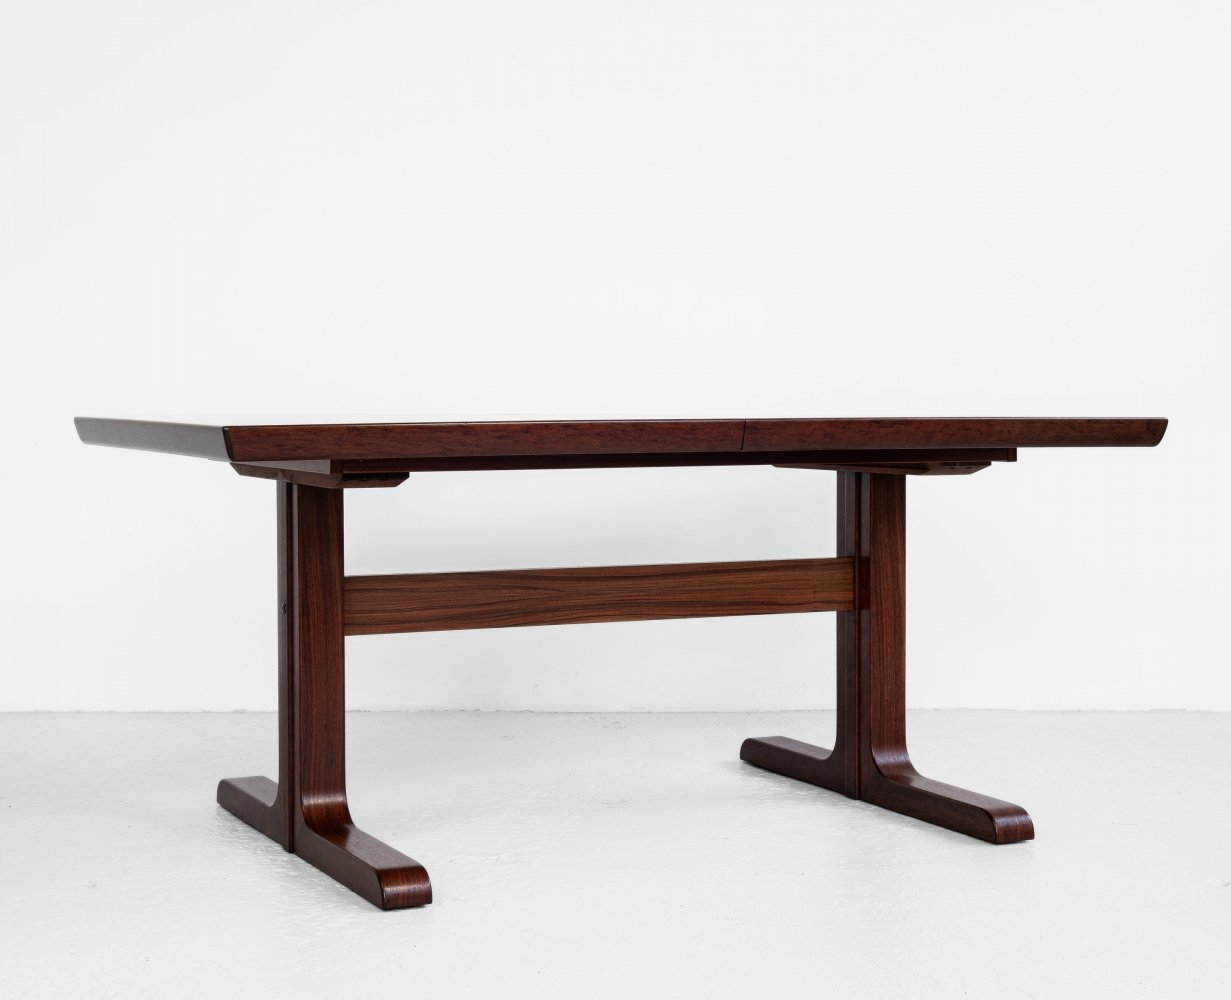 Midcentury Danish rectangular dining table in rosewood with 2 extensions 1960s